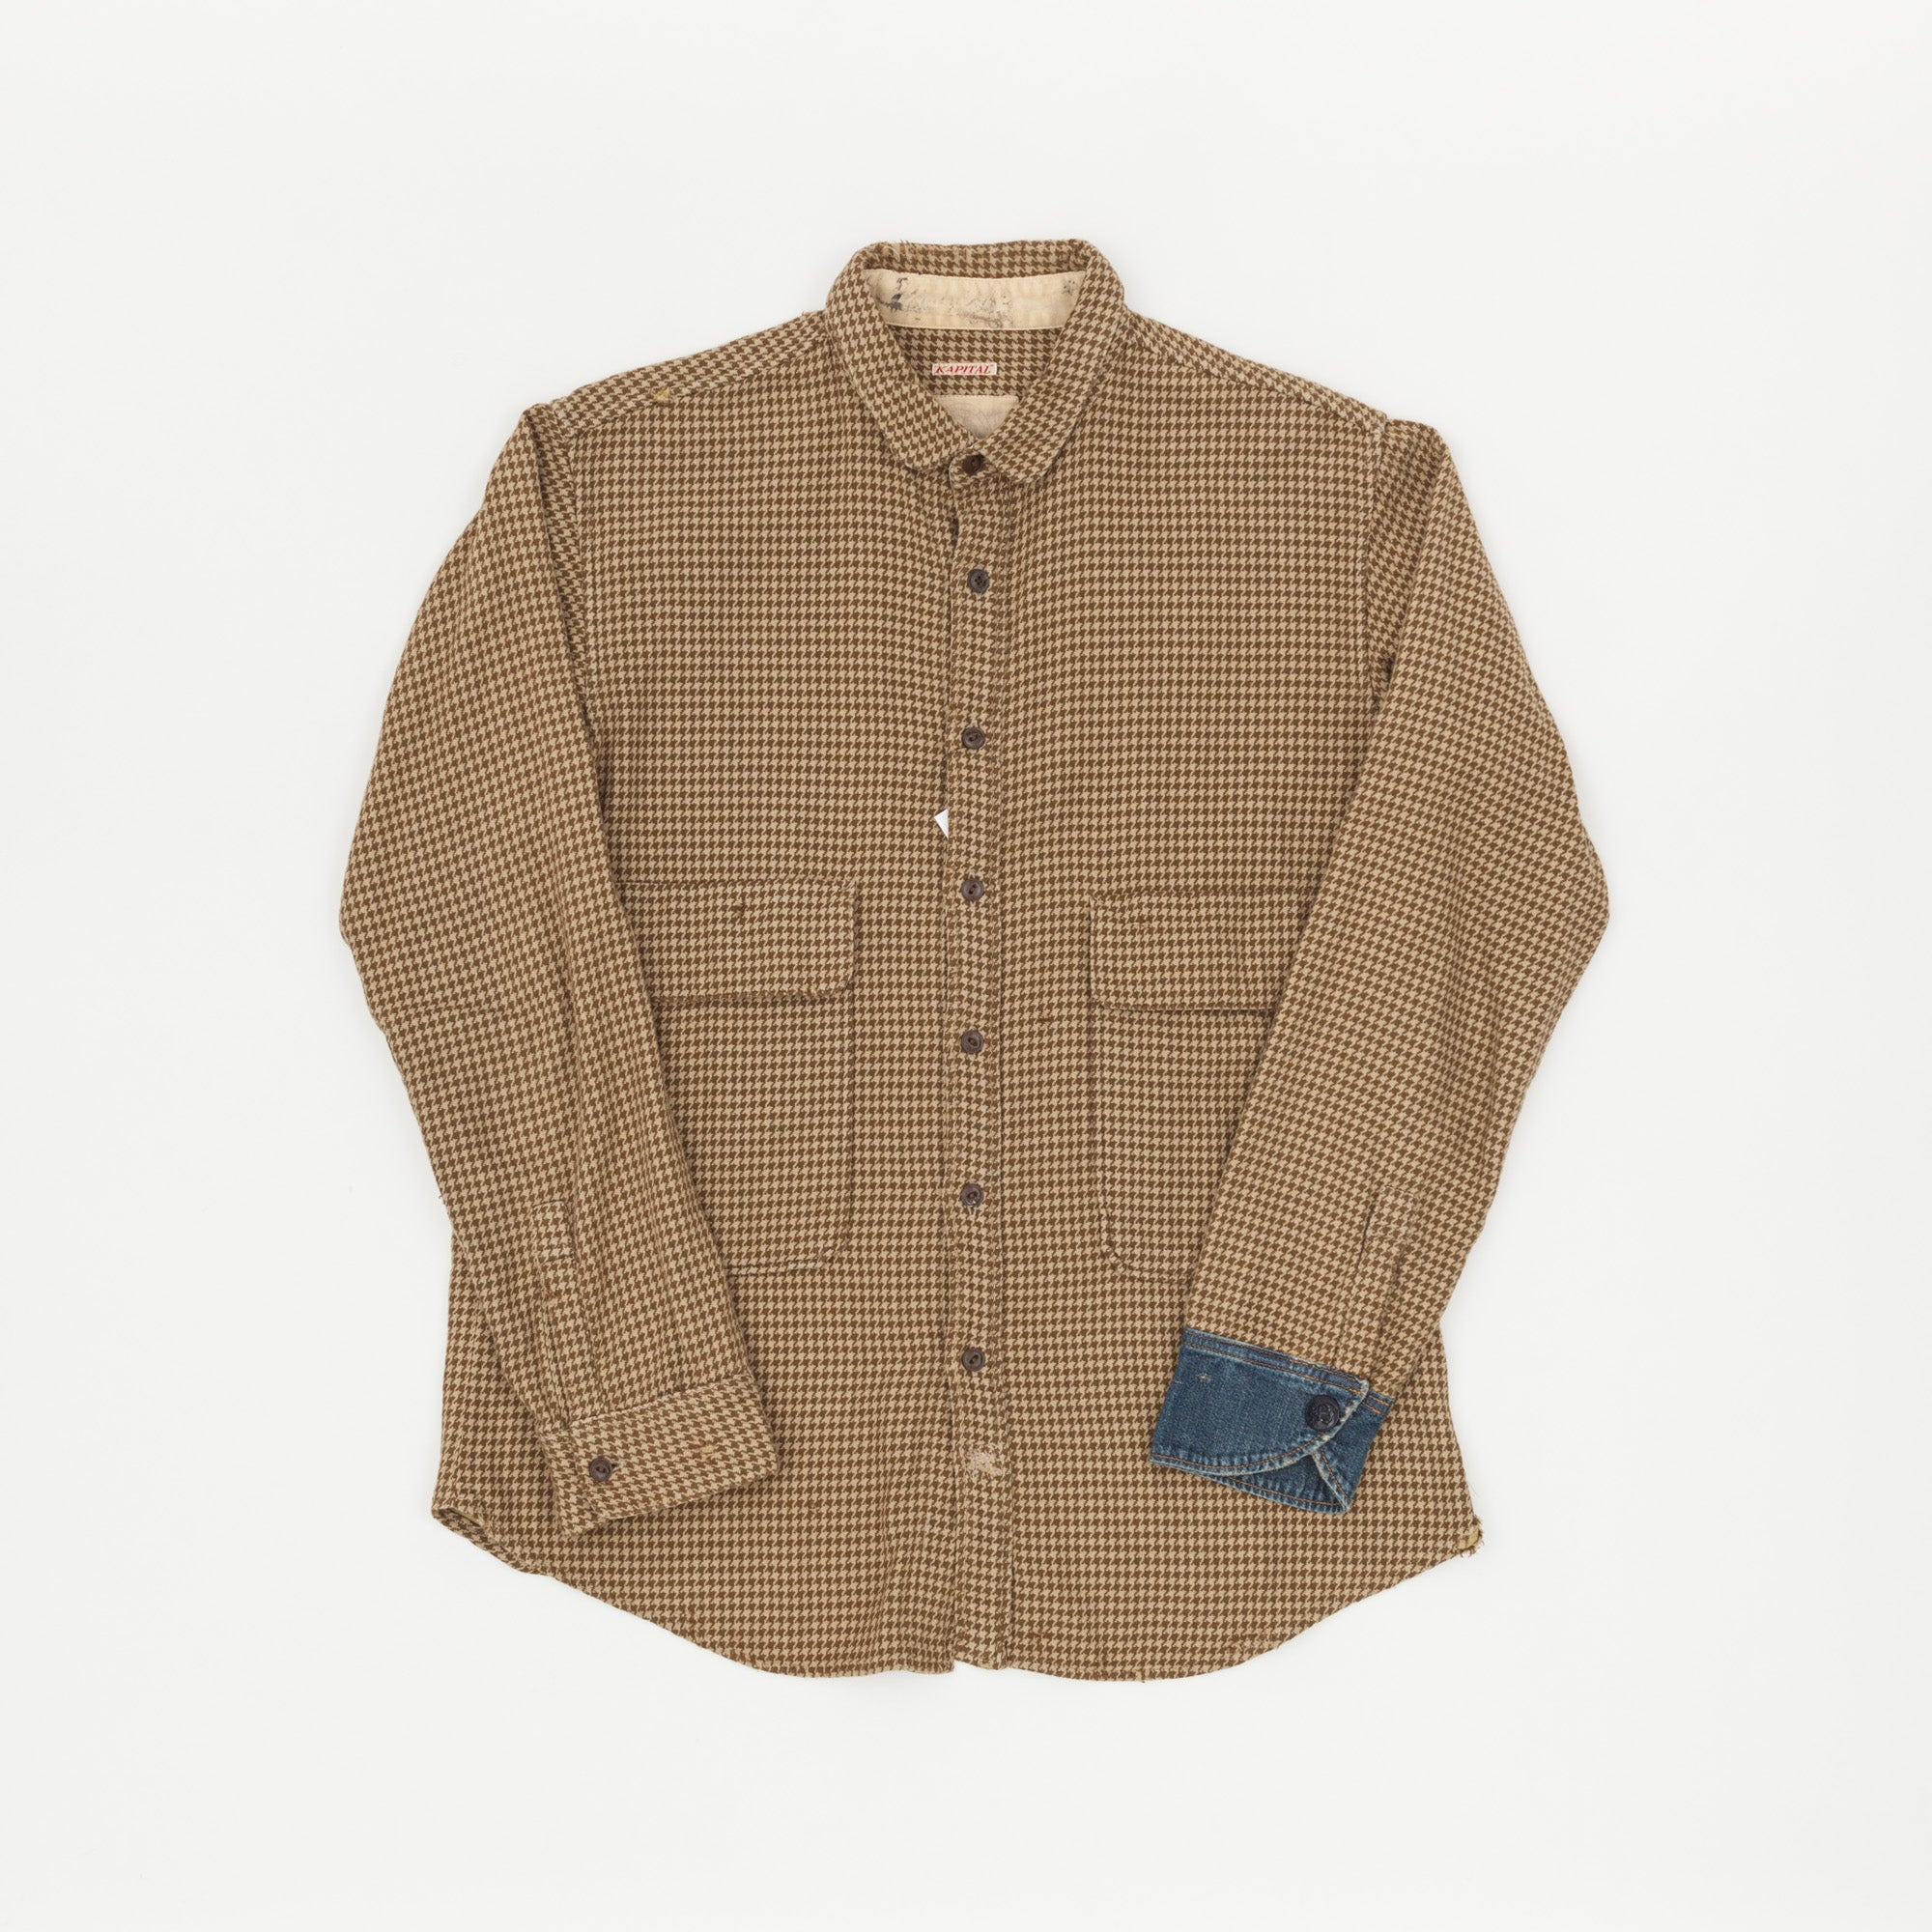 Kapital Houndstooth Work Shirt